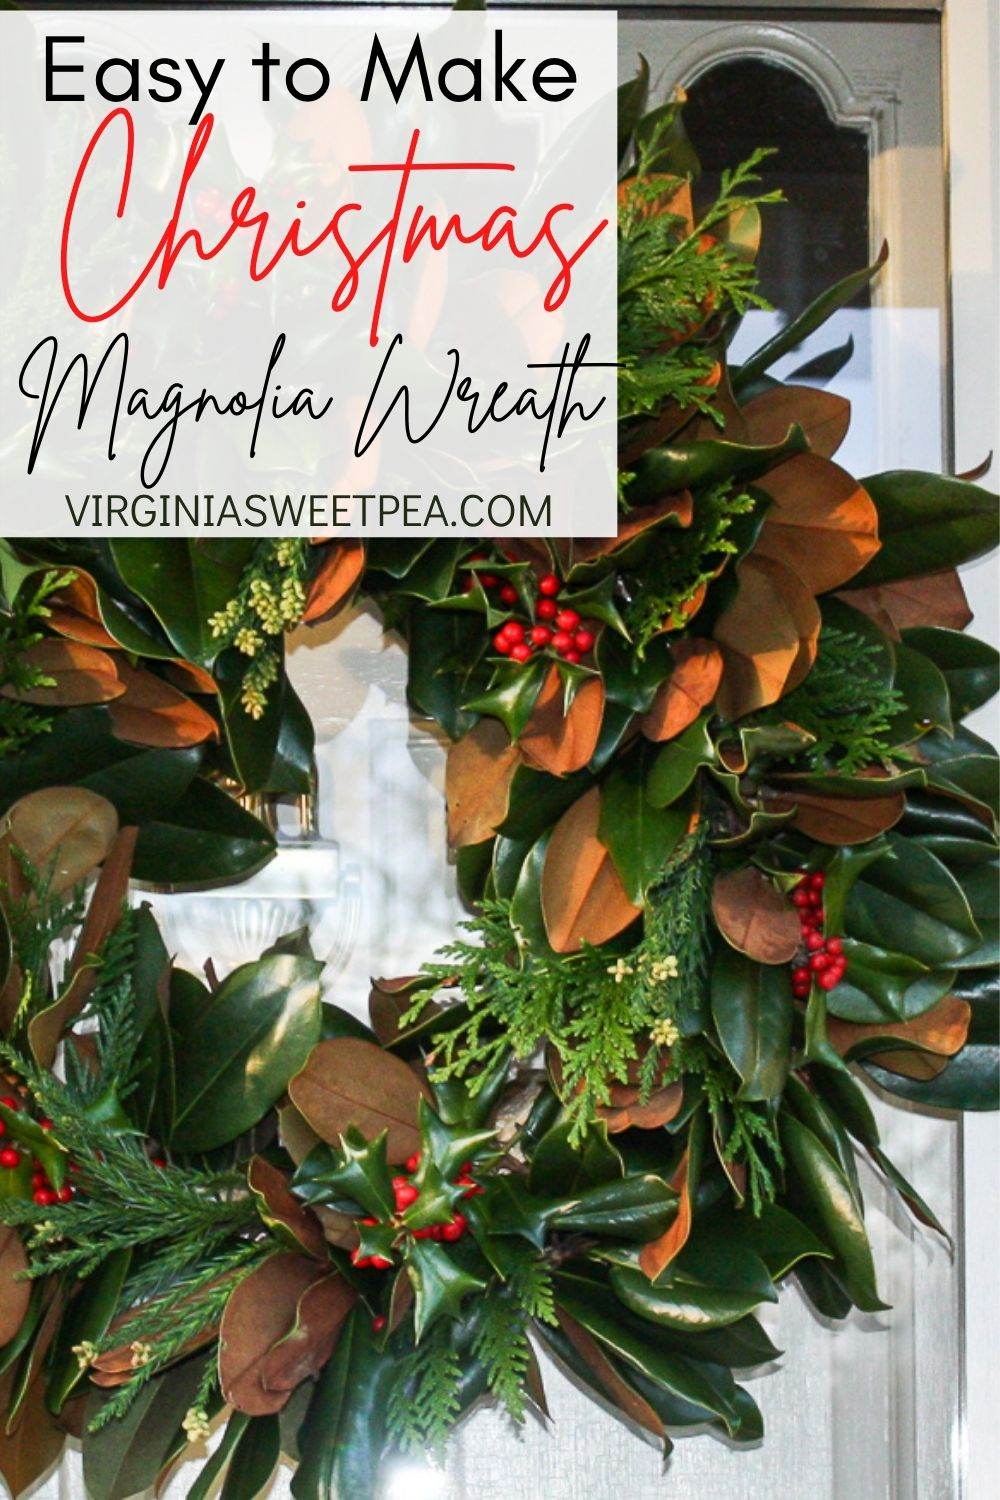 Magnolia Wreath with added greenery and holly